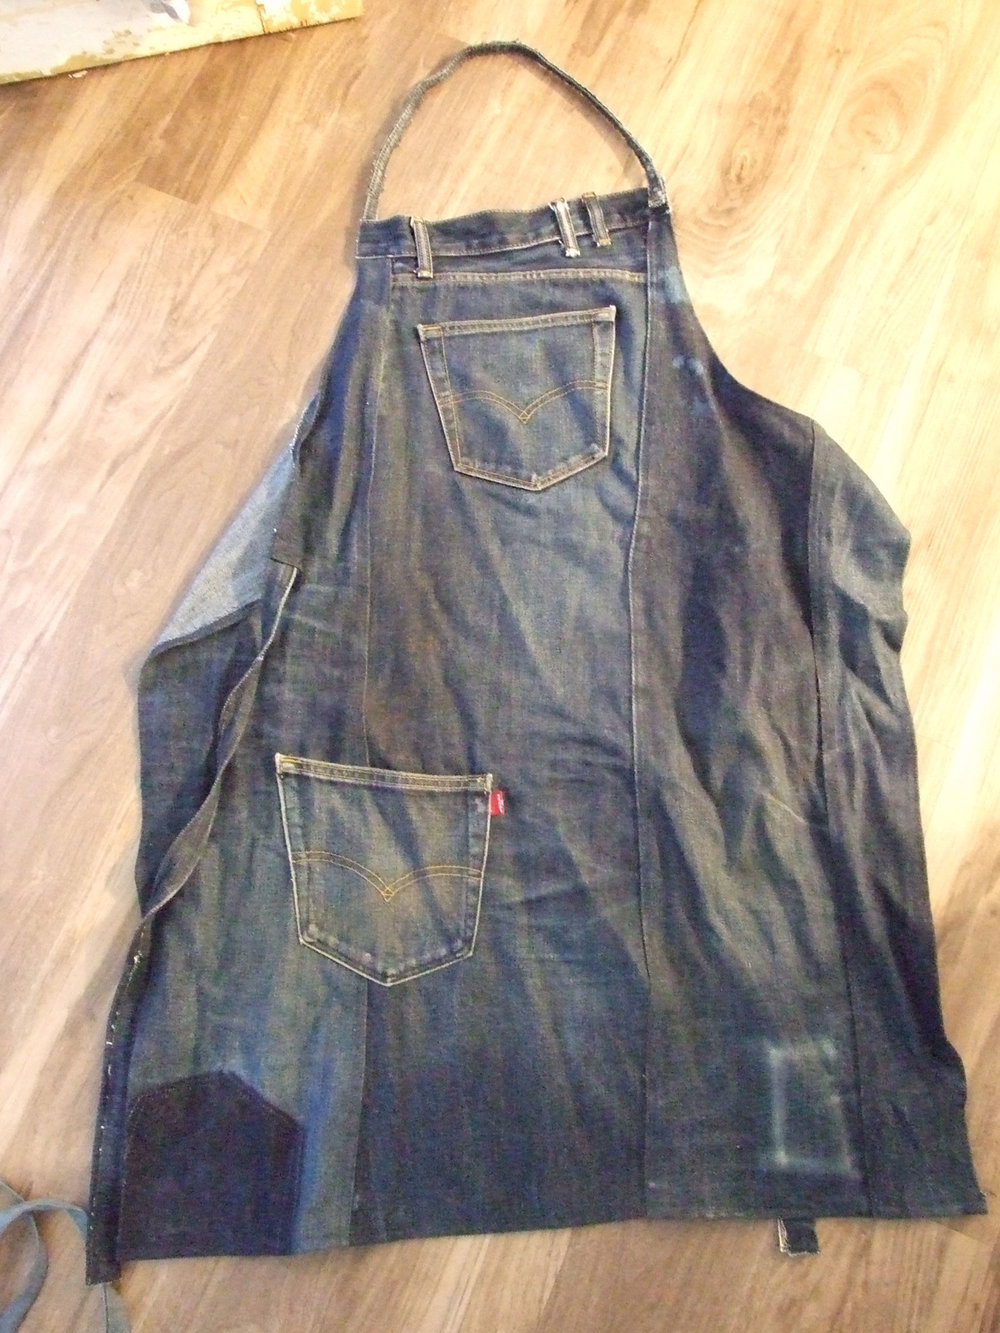 denim-apron3333web.jpg